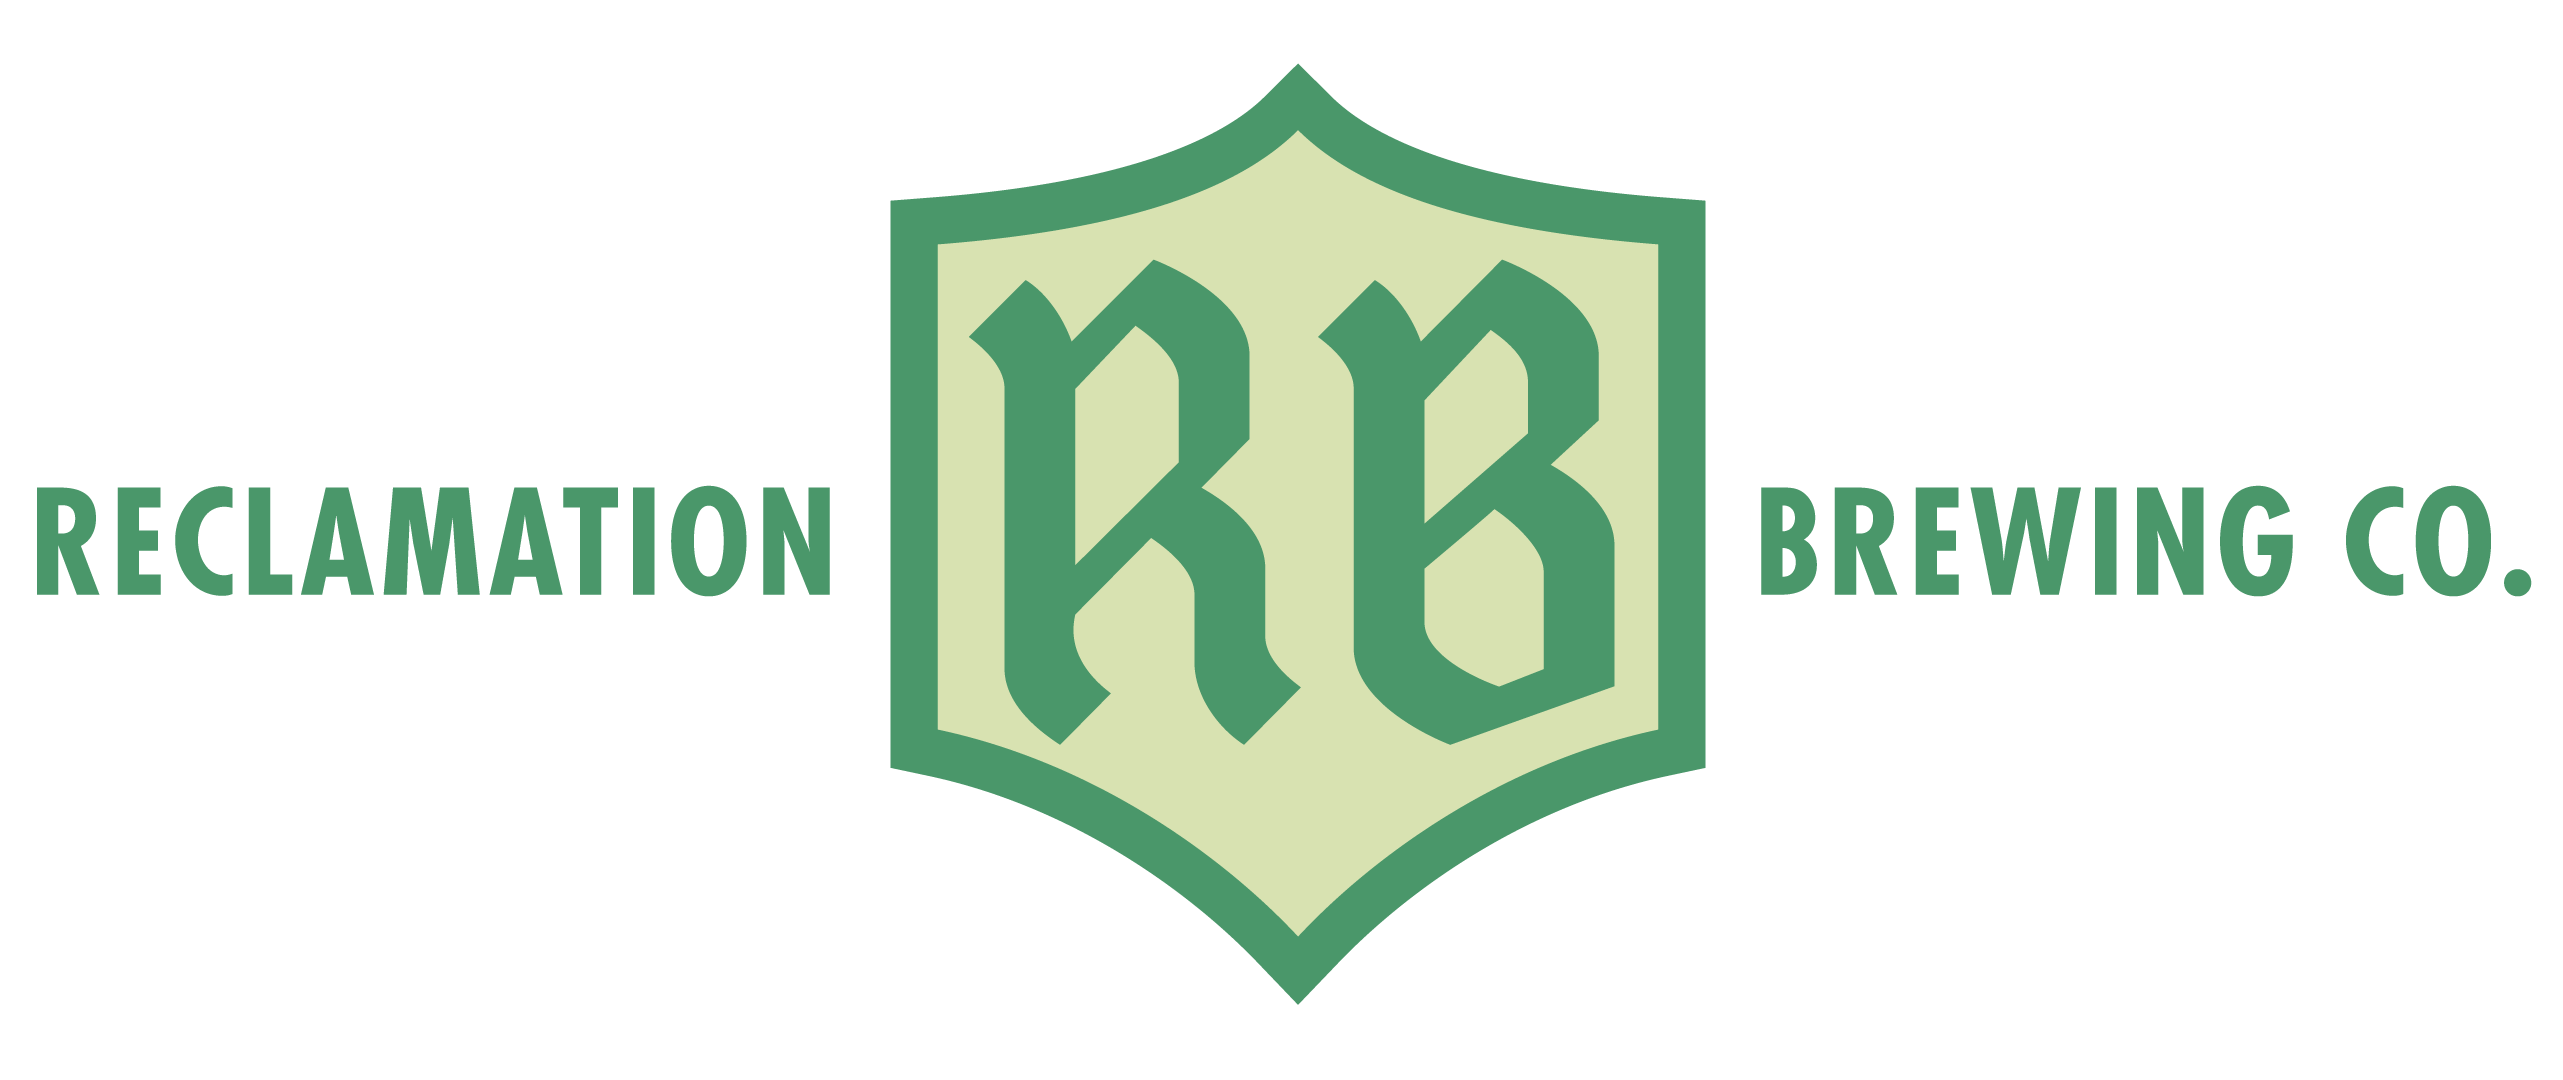 Reclamation Brewing Company